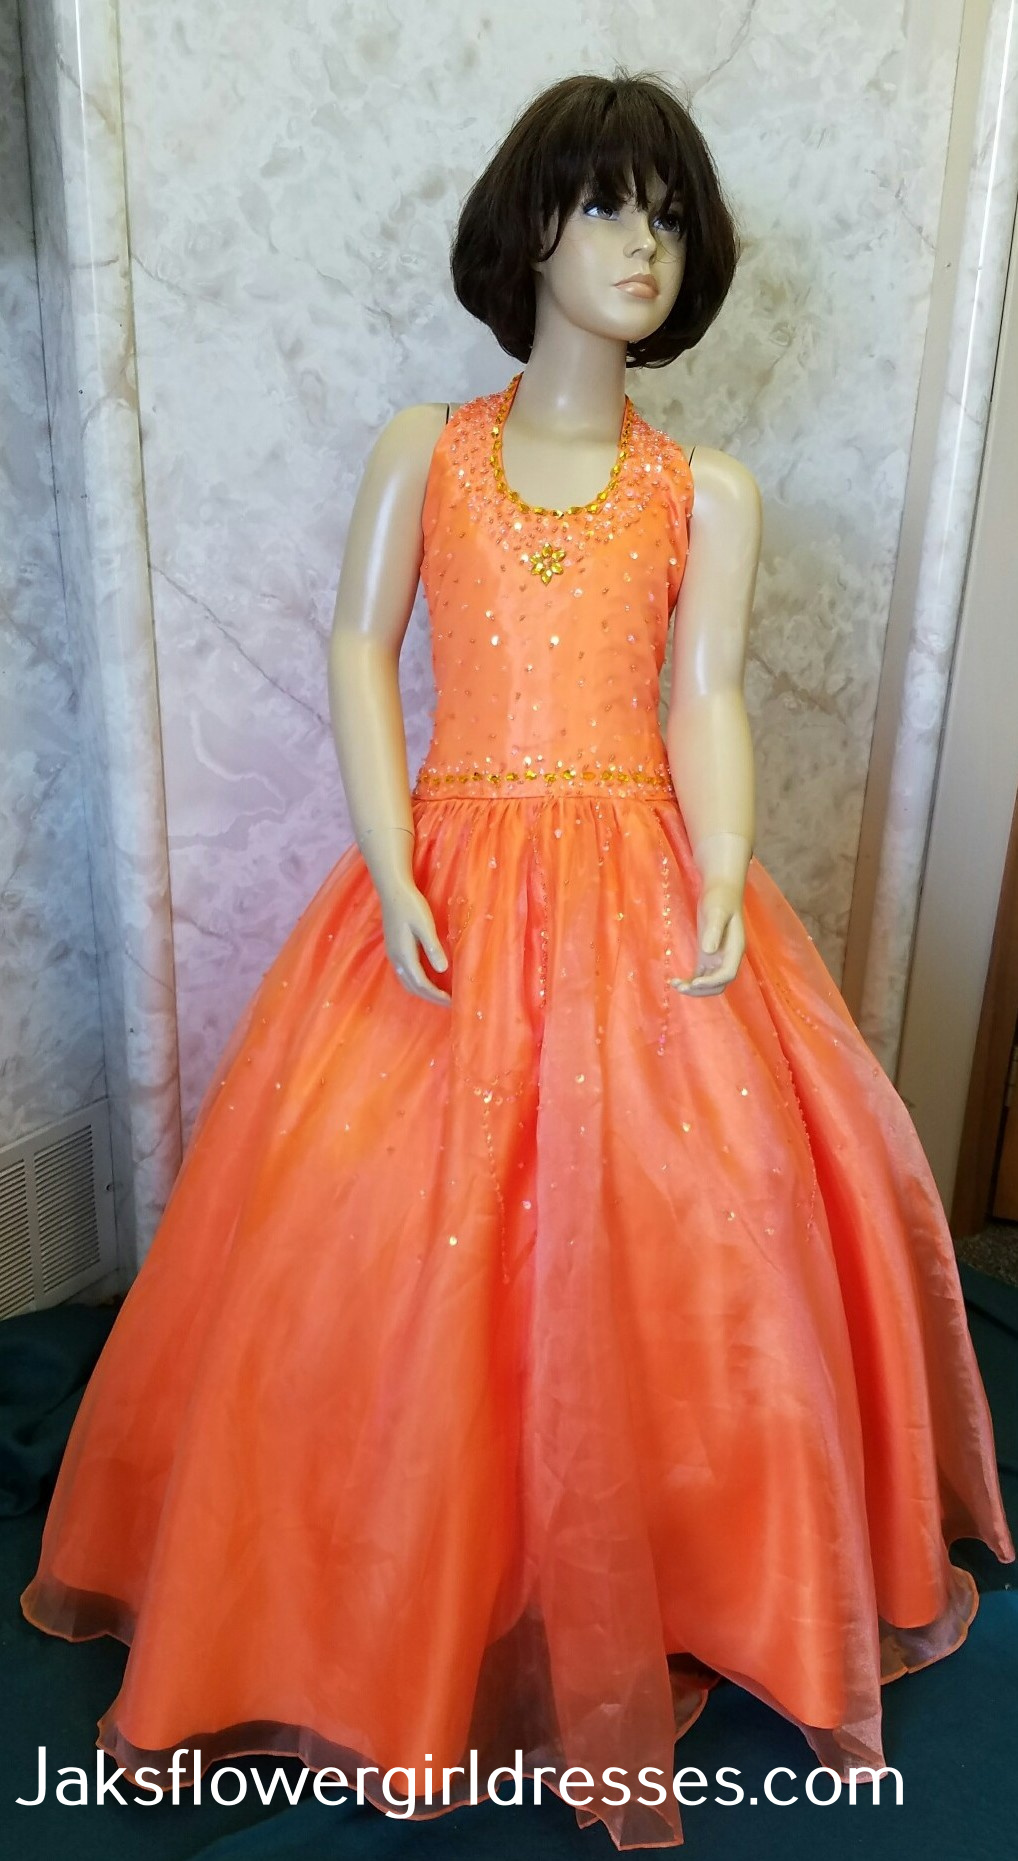 orange pageant dresses for girls